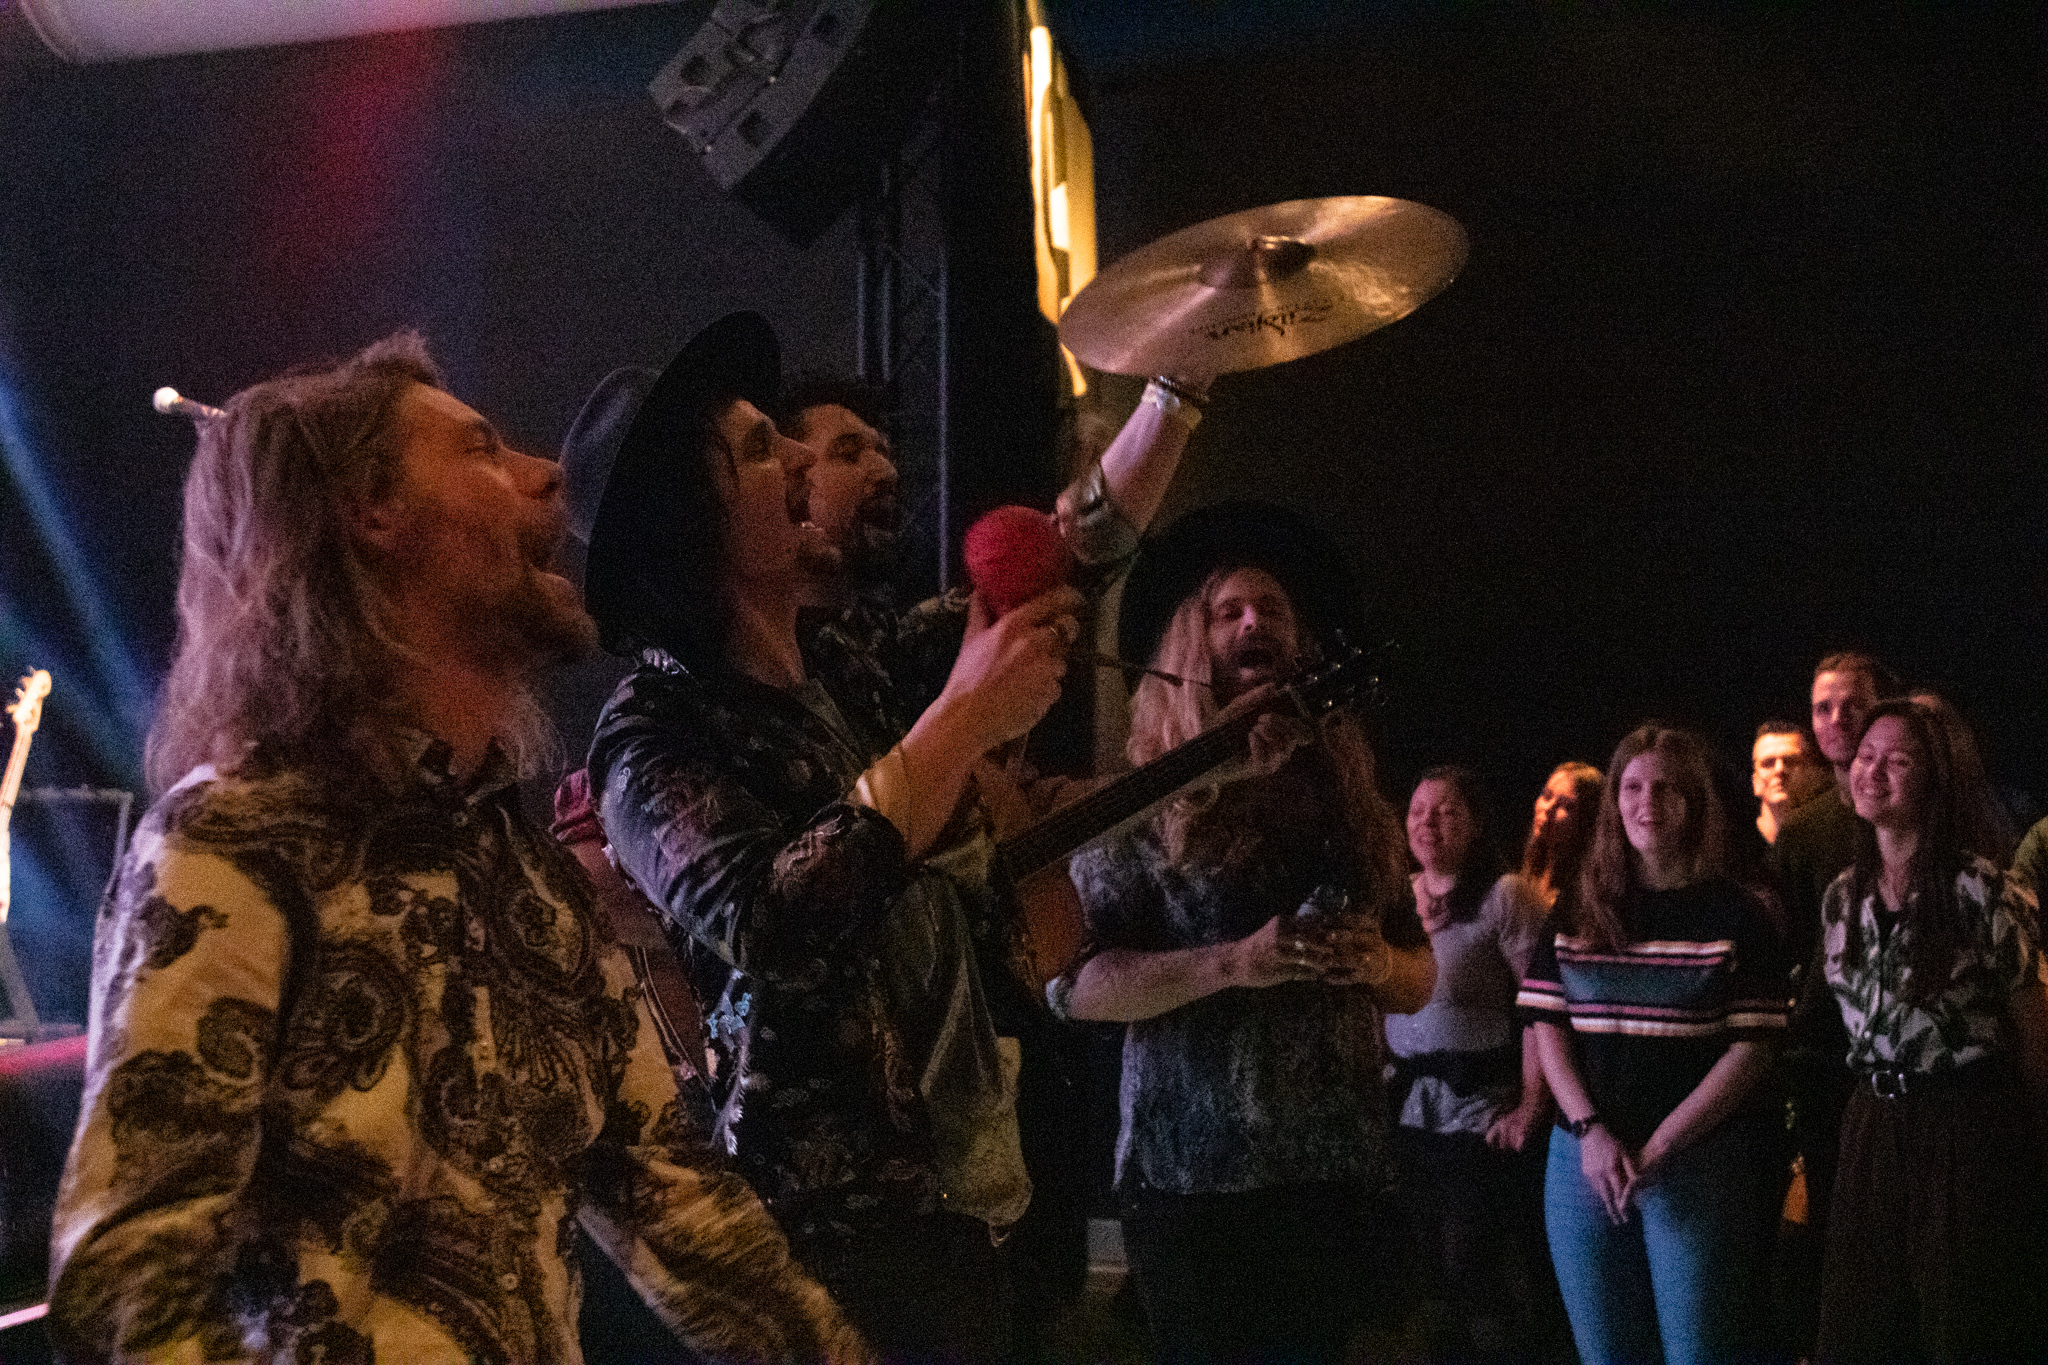 FolfRoadShow-QFactory-Amsterdam_NL-20191114-SylviaWijnands-025